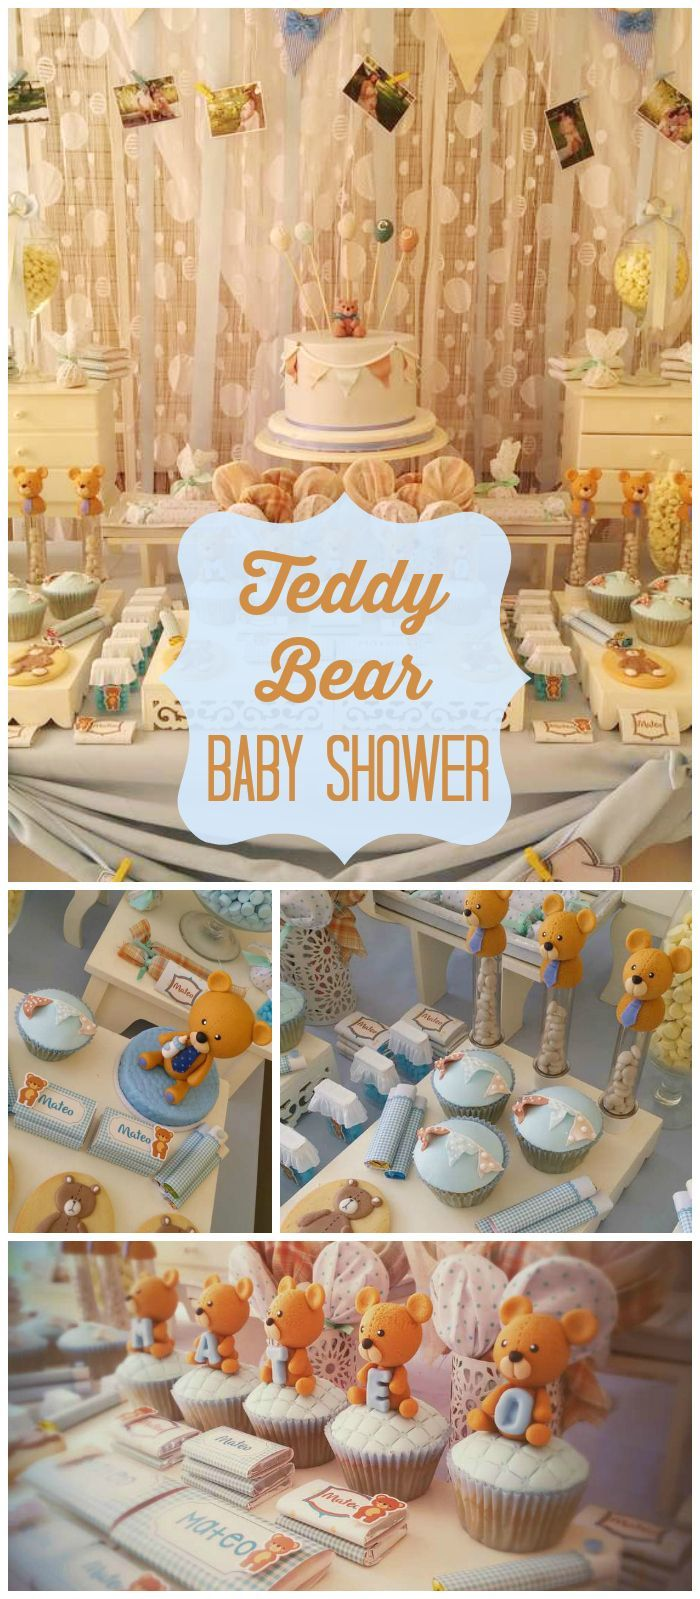 Most baby showers are hosted right around lunch time which can leave - Bears Baby Shower Sweet Bears